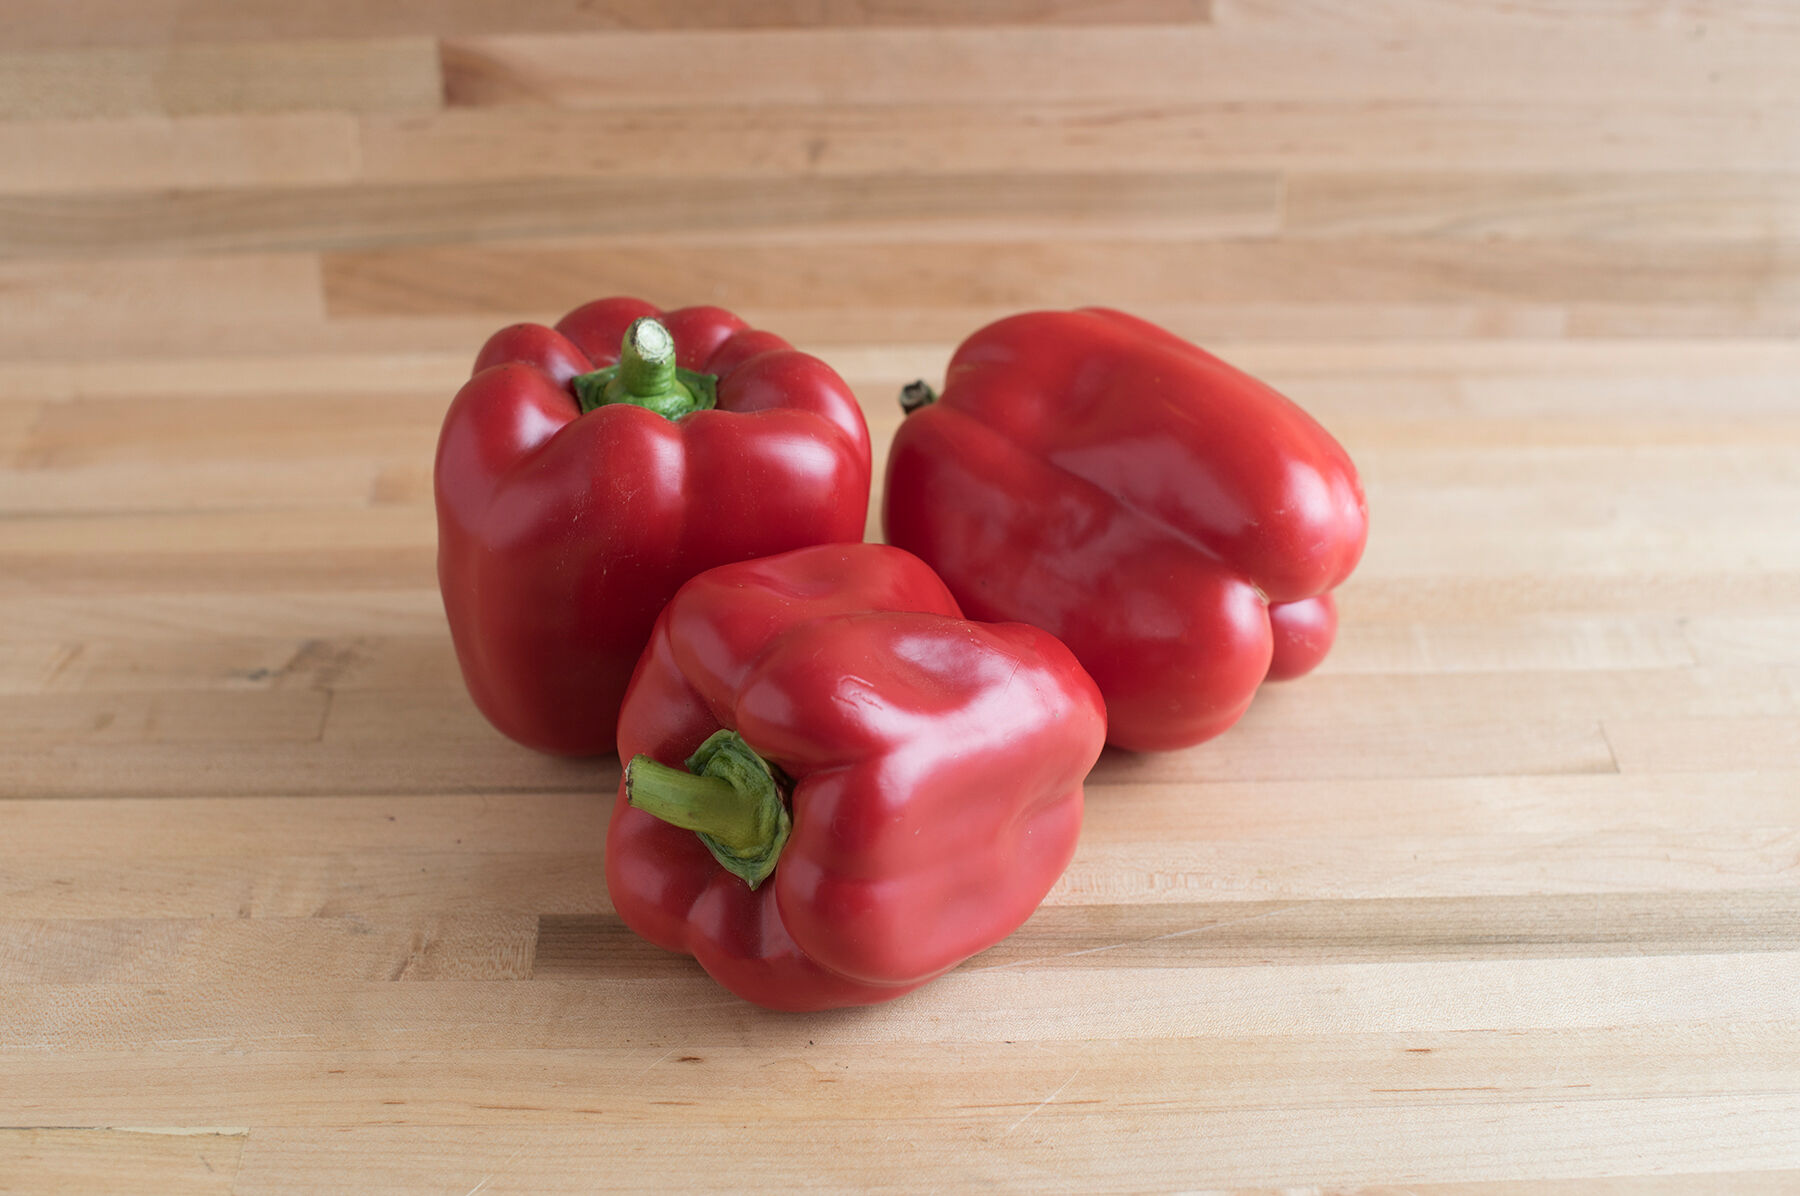 X3R Red Knight F1 Pepper Seed Johnny39s Selected Seeds